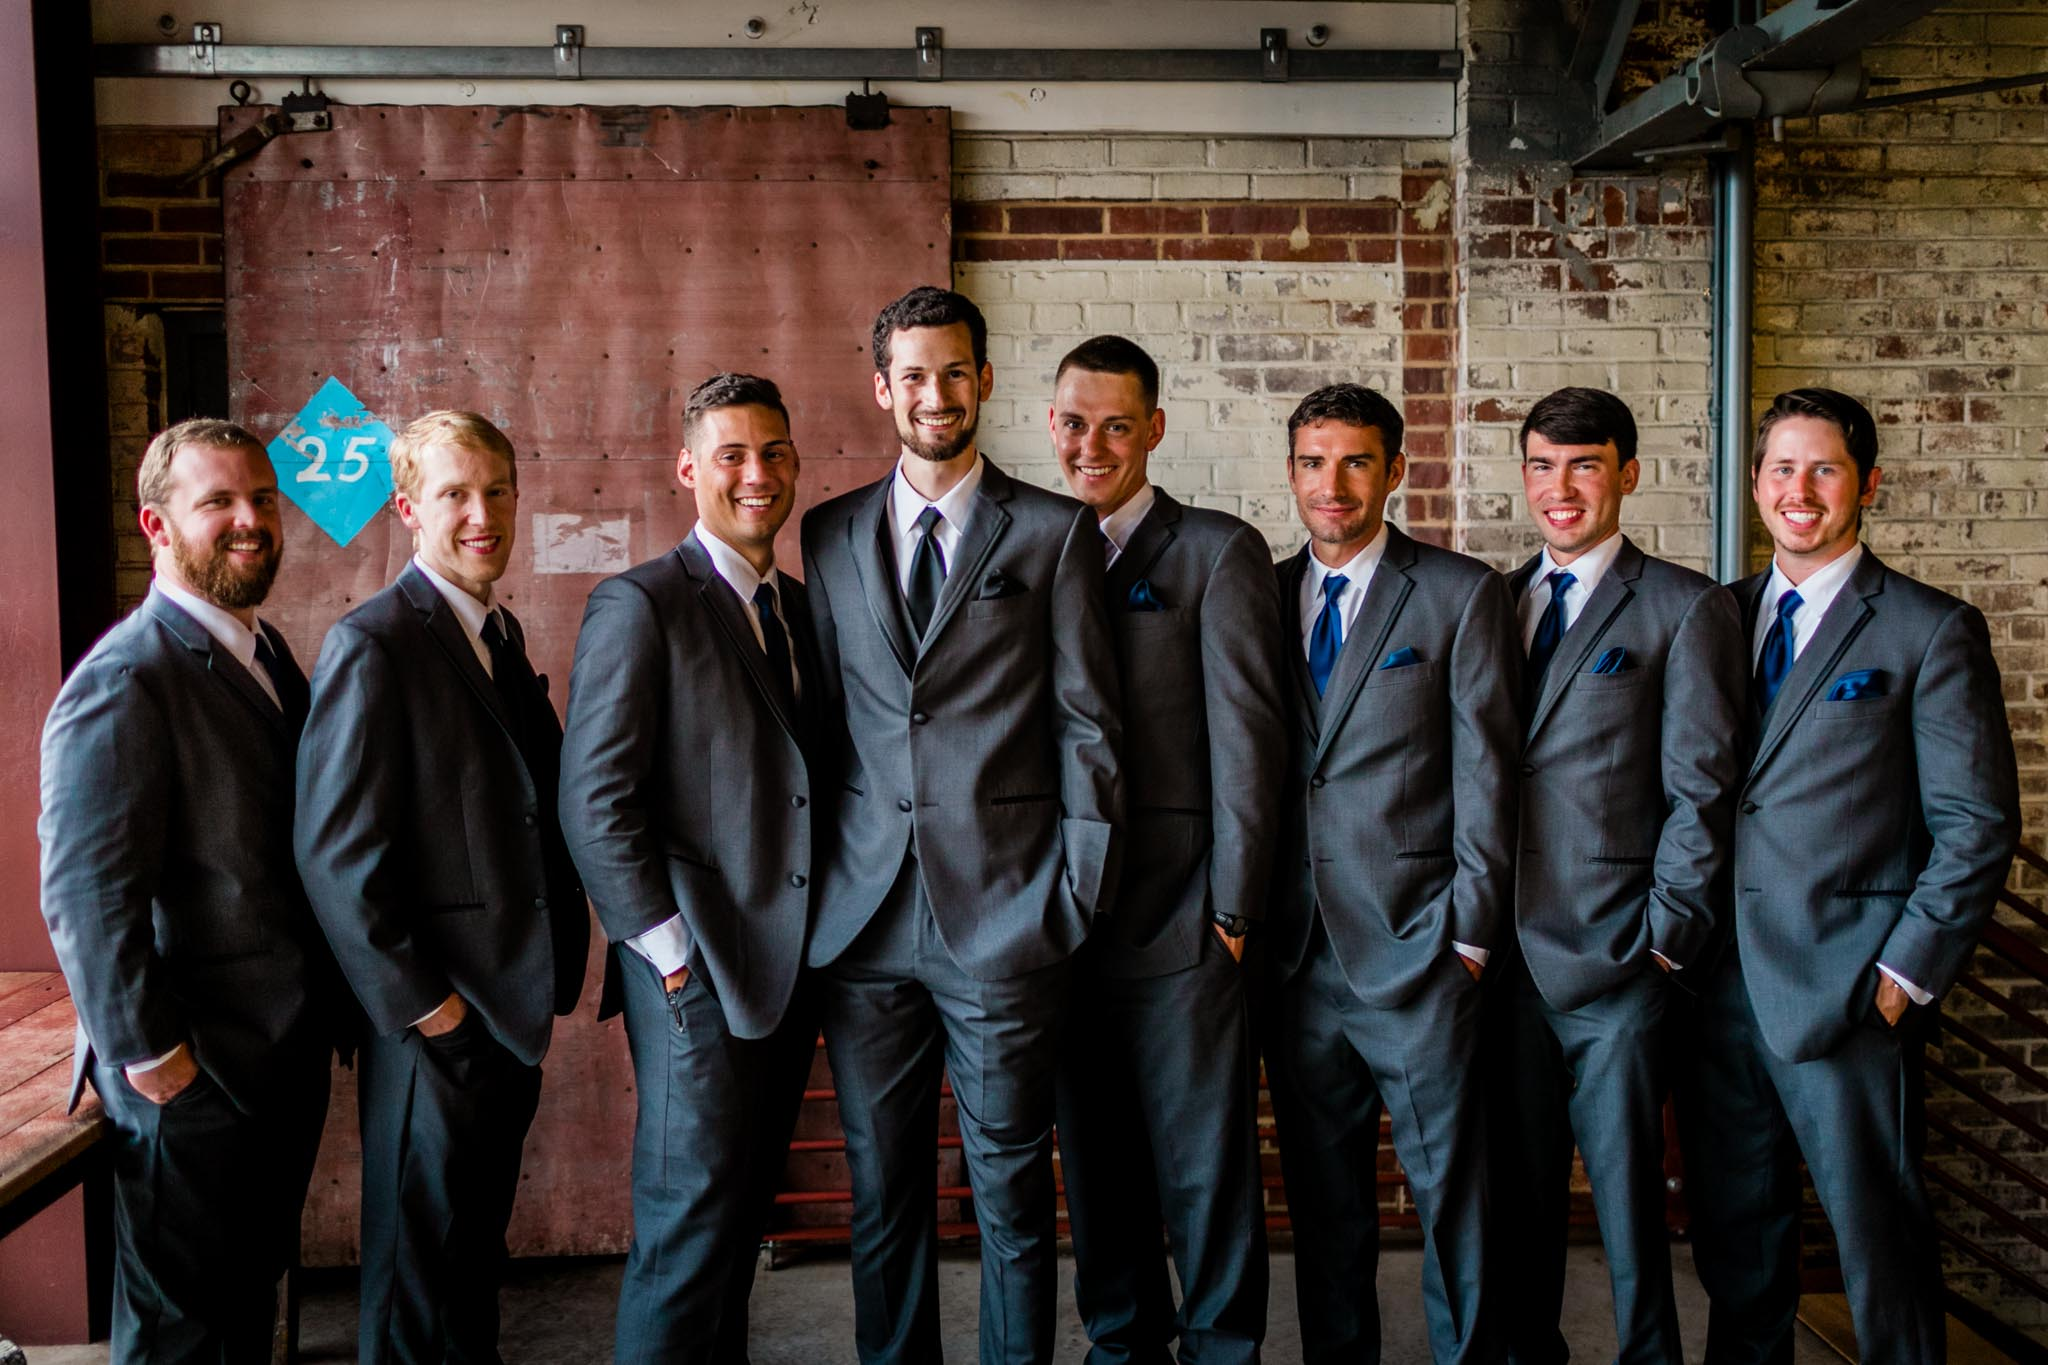 Haw River Ballroom Wedding | Durham Photographer | By G. Lin Photography | Portrait of groomsmen smiling